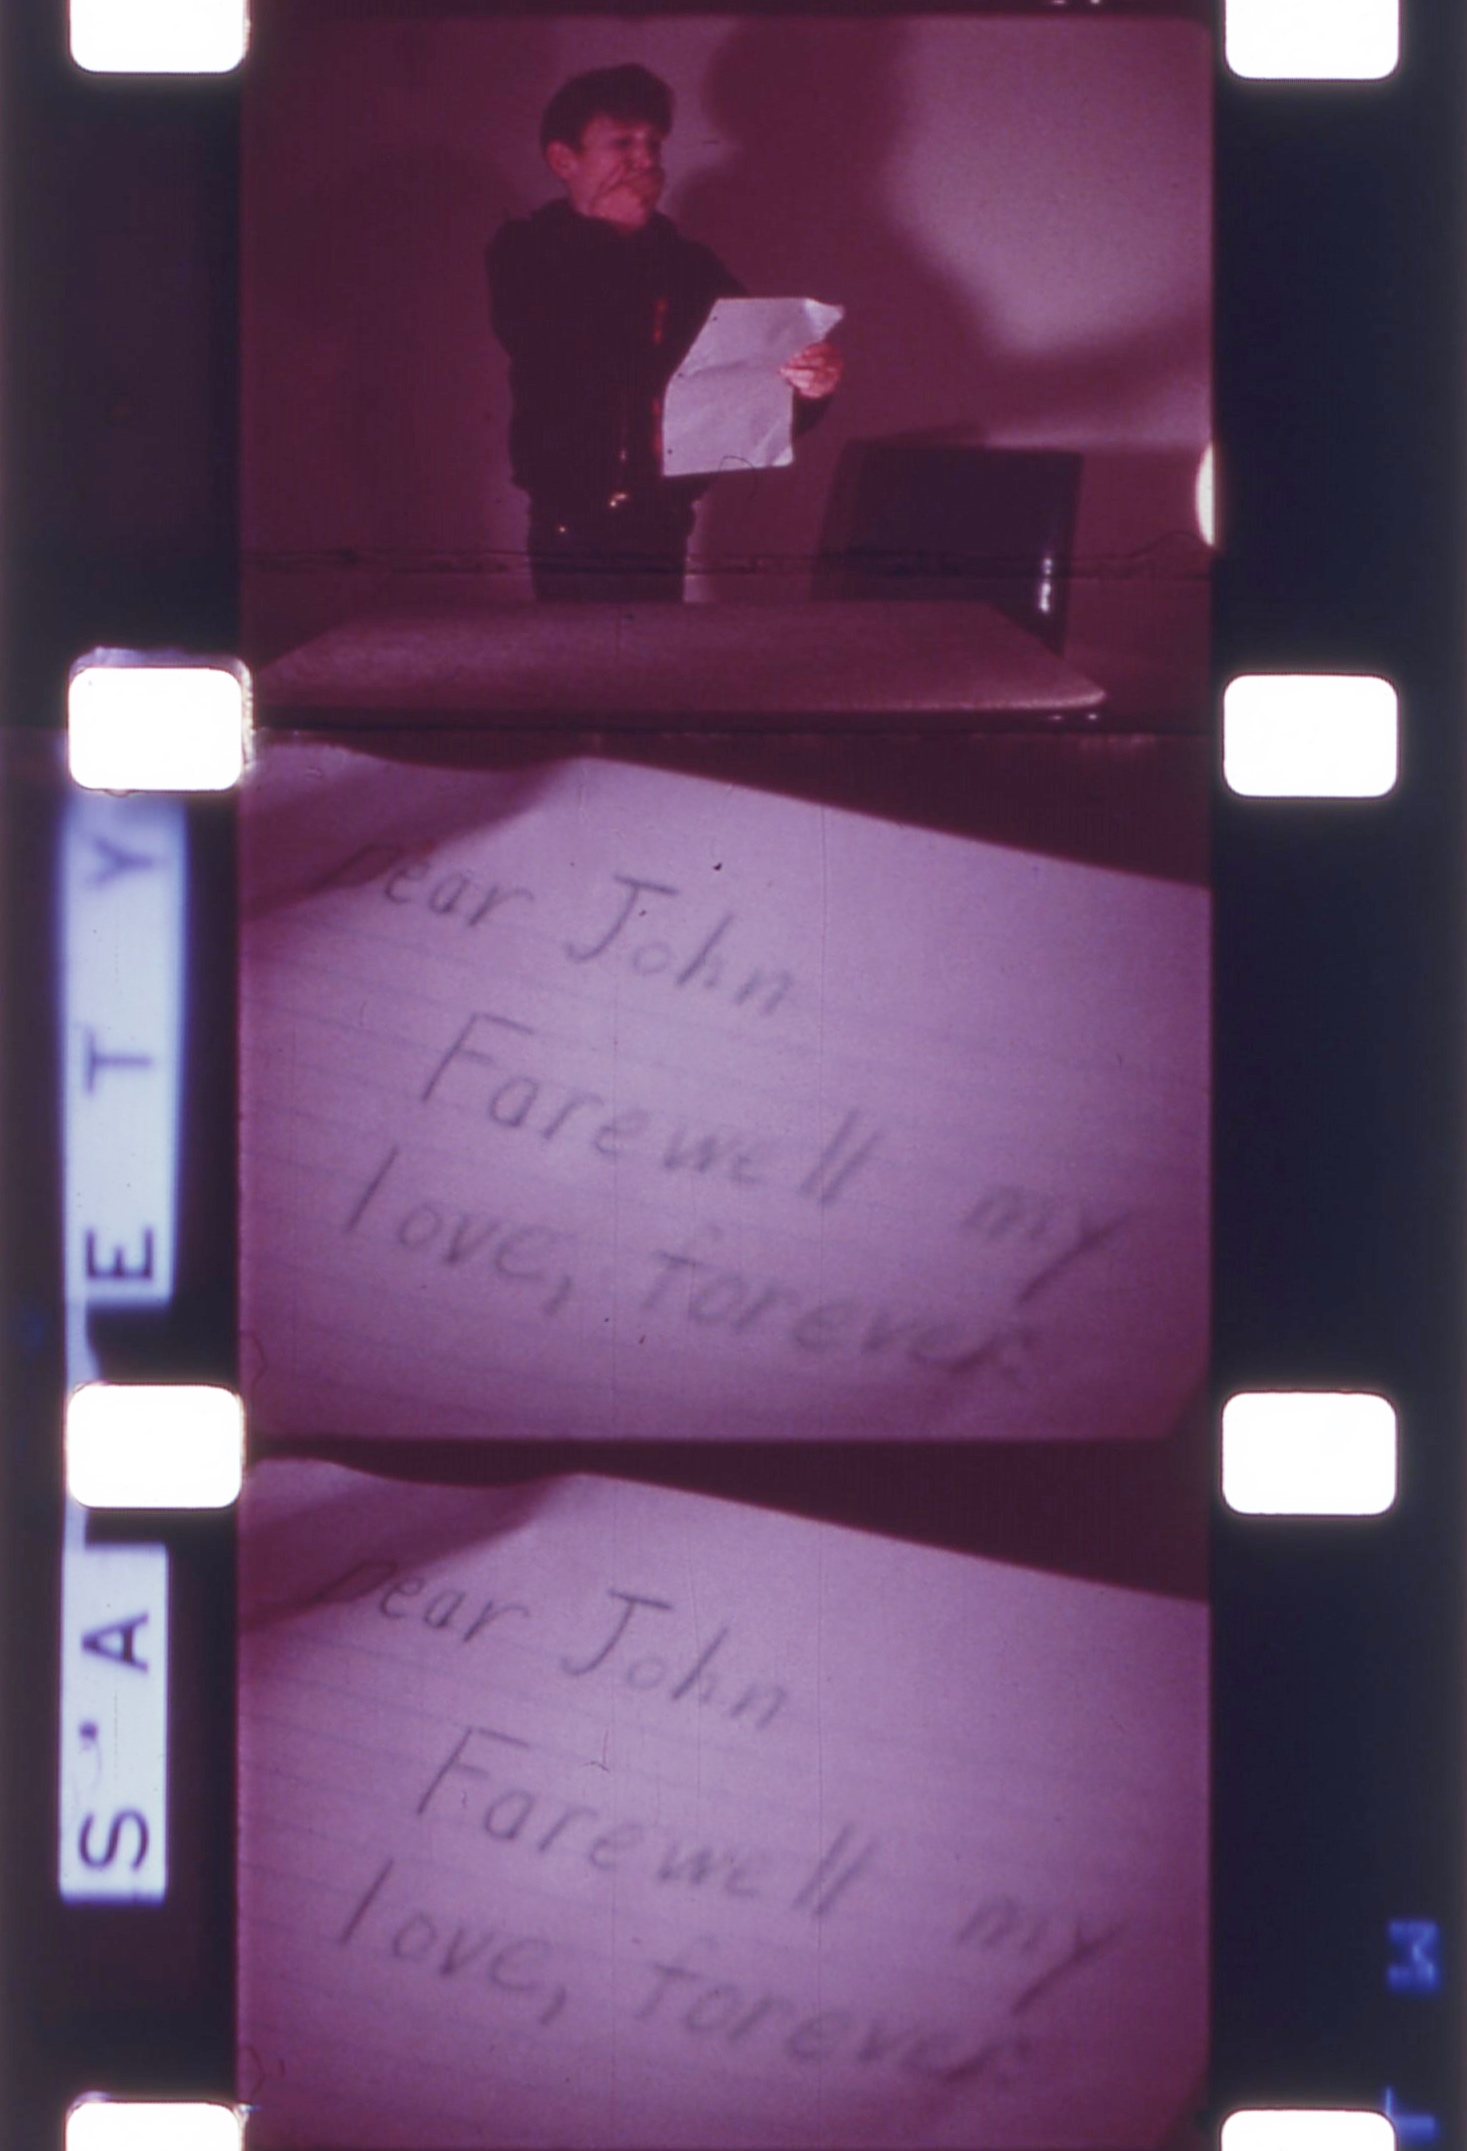 16mm film strip still,  Irritation and Frustration  (1968), Tim Smith Moving Image Collection. Courtesy Oregon Historical Society. Image subject to copyright laws.